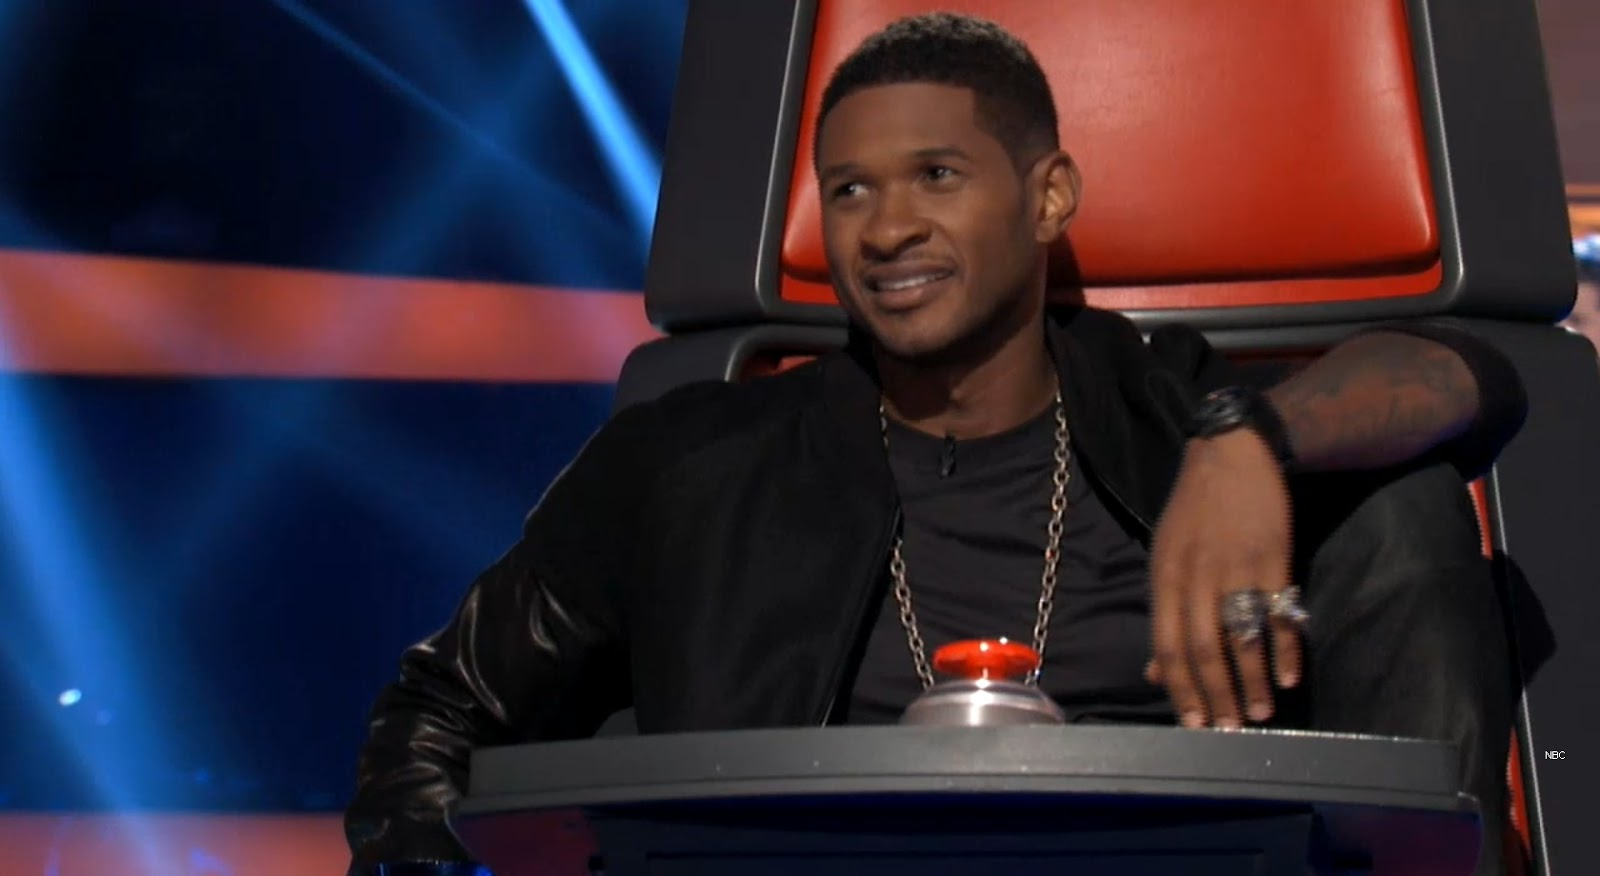 Usher s the competitive guy on the voice season 4 hollywood junket